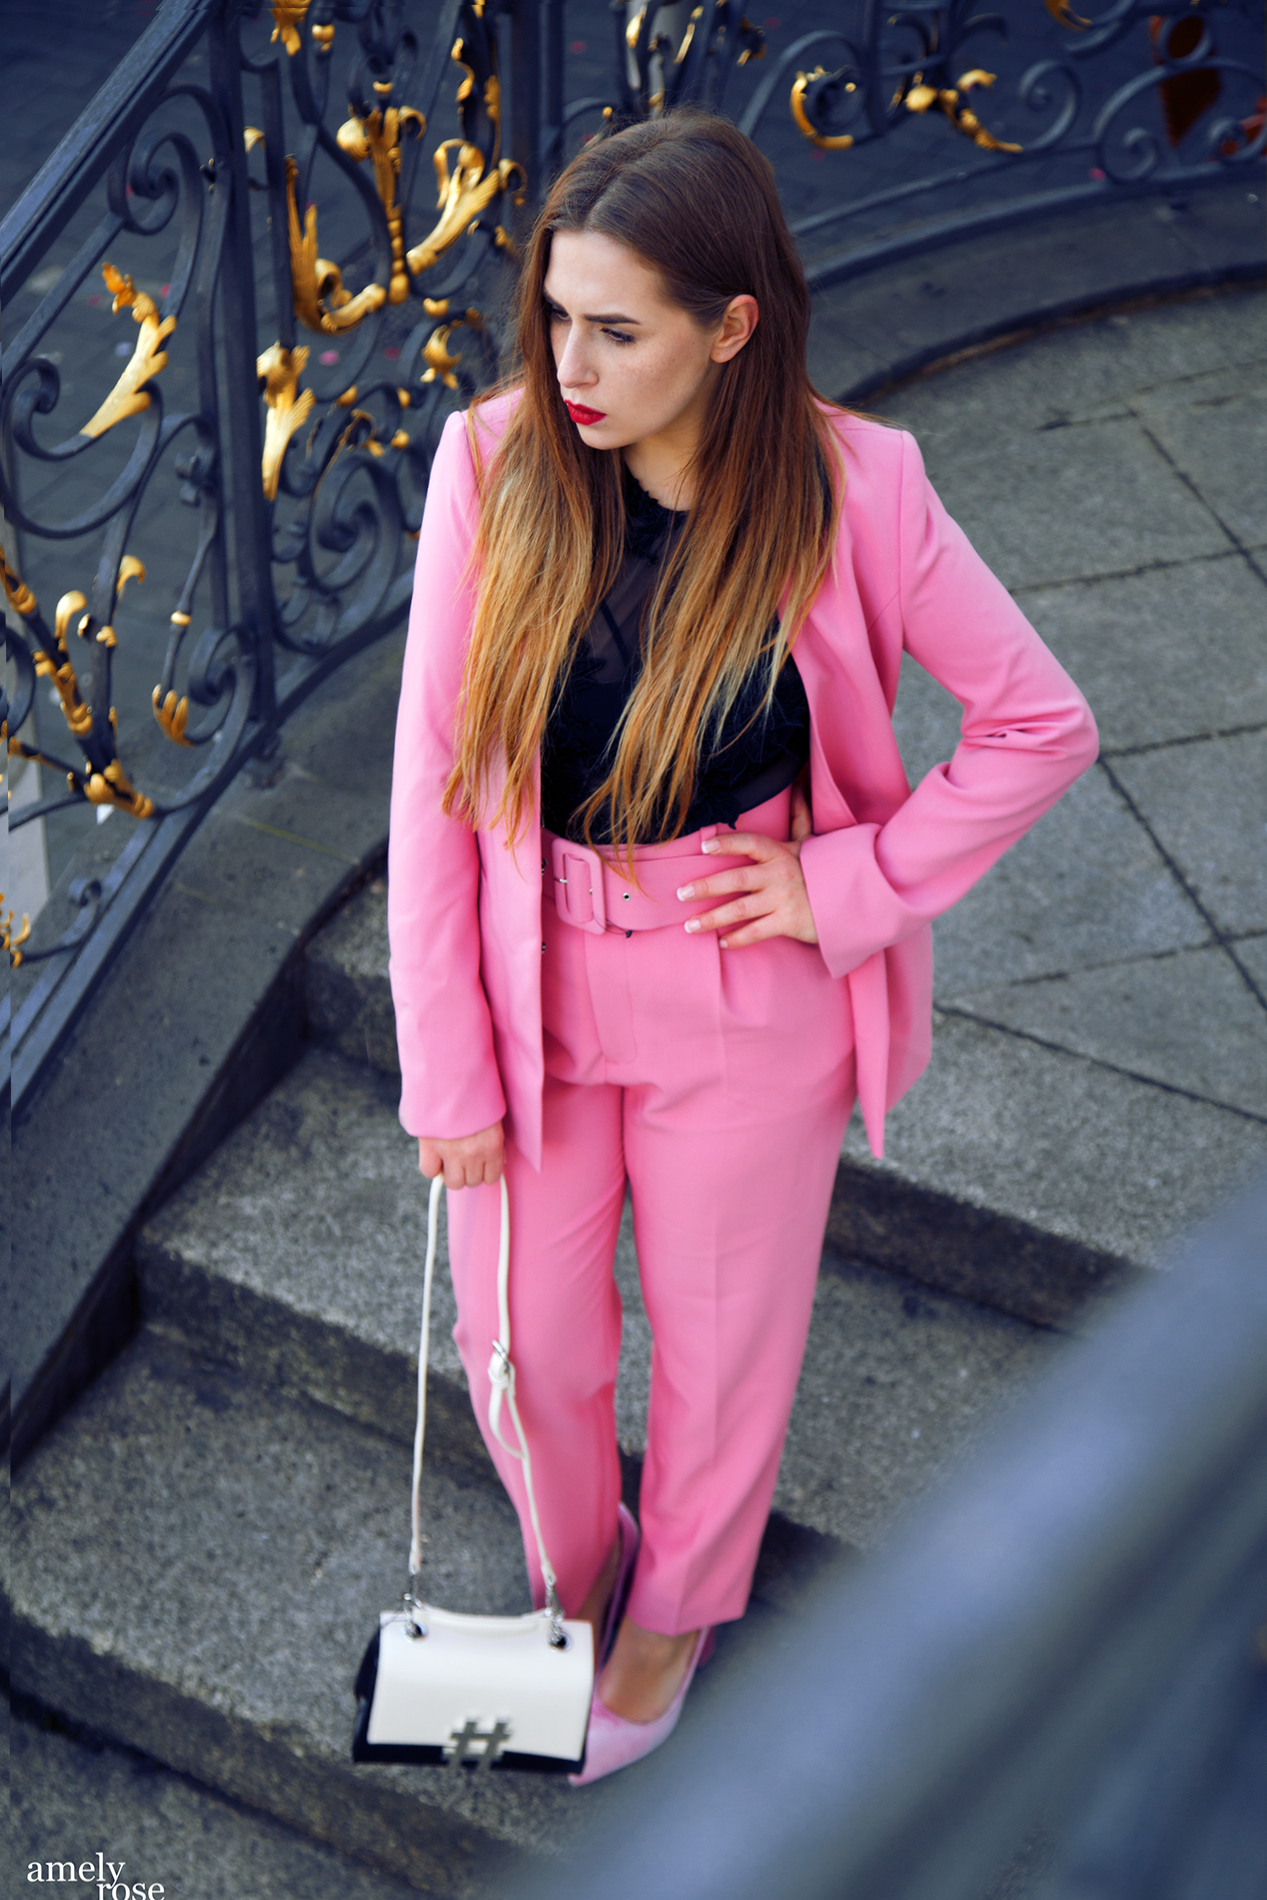 amelyrose, amely rose, amely-rose, fashionblogger, autumnlook, festival, festivals, festivalfashion, festivaloutfit, bonn, kirschblüten_bonn, allpinkeverything, pink, anzug, altes_rathaus, fashiongirl, lookbook, look, fashionblogger_de, bloggerlife, fashionlook, mode, modeblogger, germanblogger, zara, architecture,